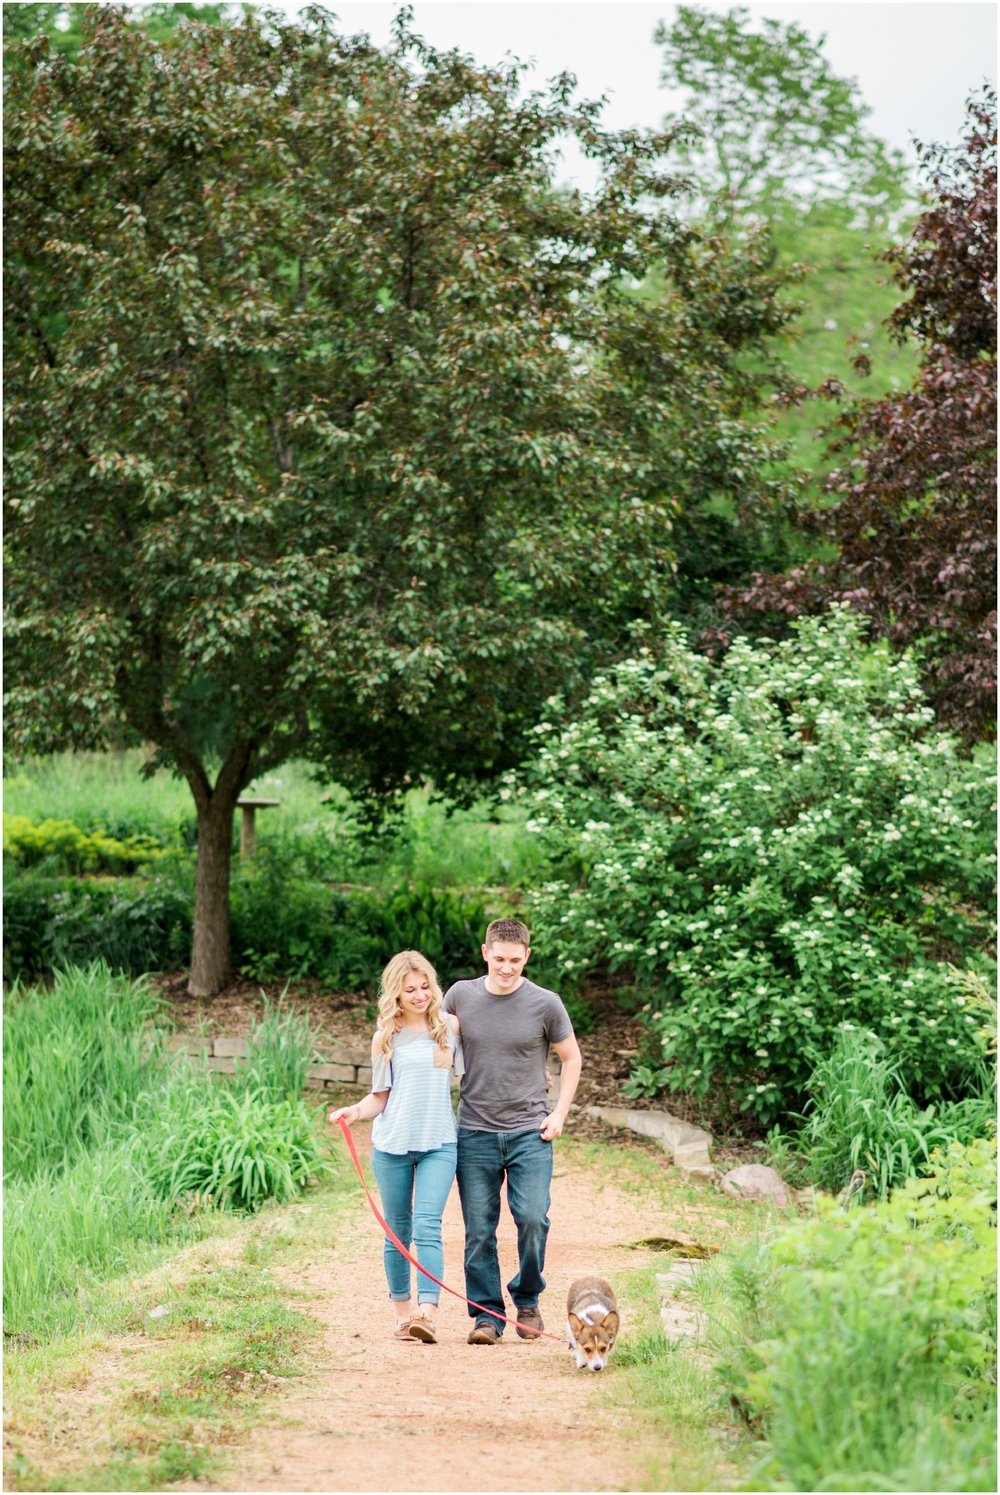 Paquette_Park_Portage_WI_Engagement_Photos_Heather_and_Derek_0007.jpg